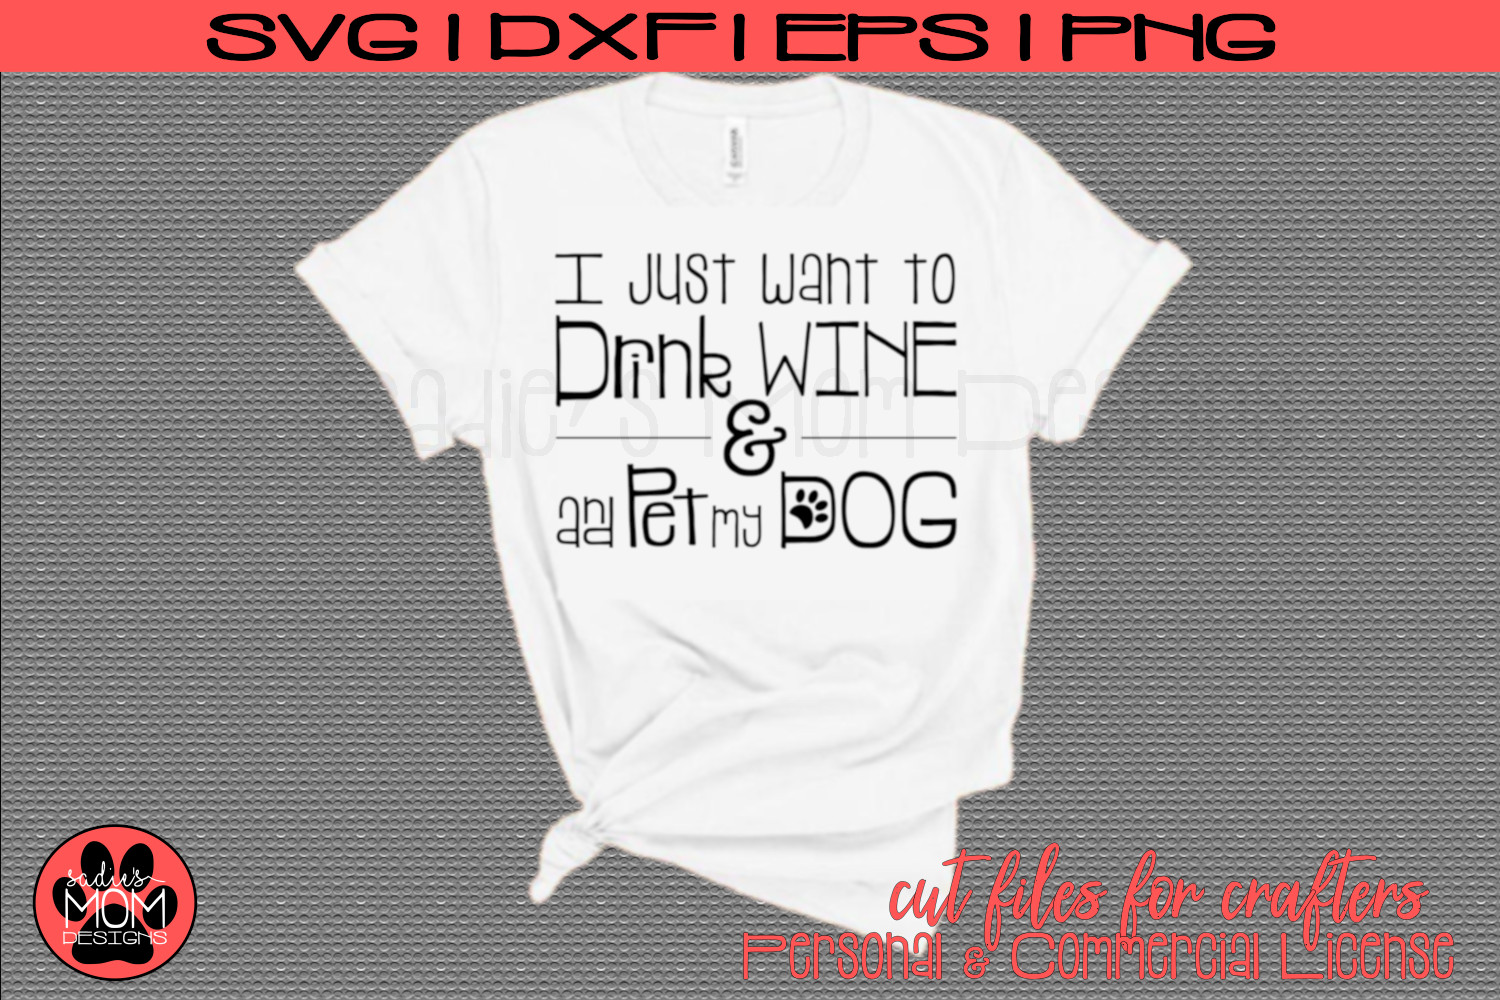 I Just Want to Drink Wine and Pet my Dog | SVG Cut File example image 1